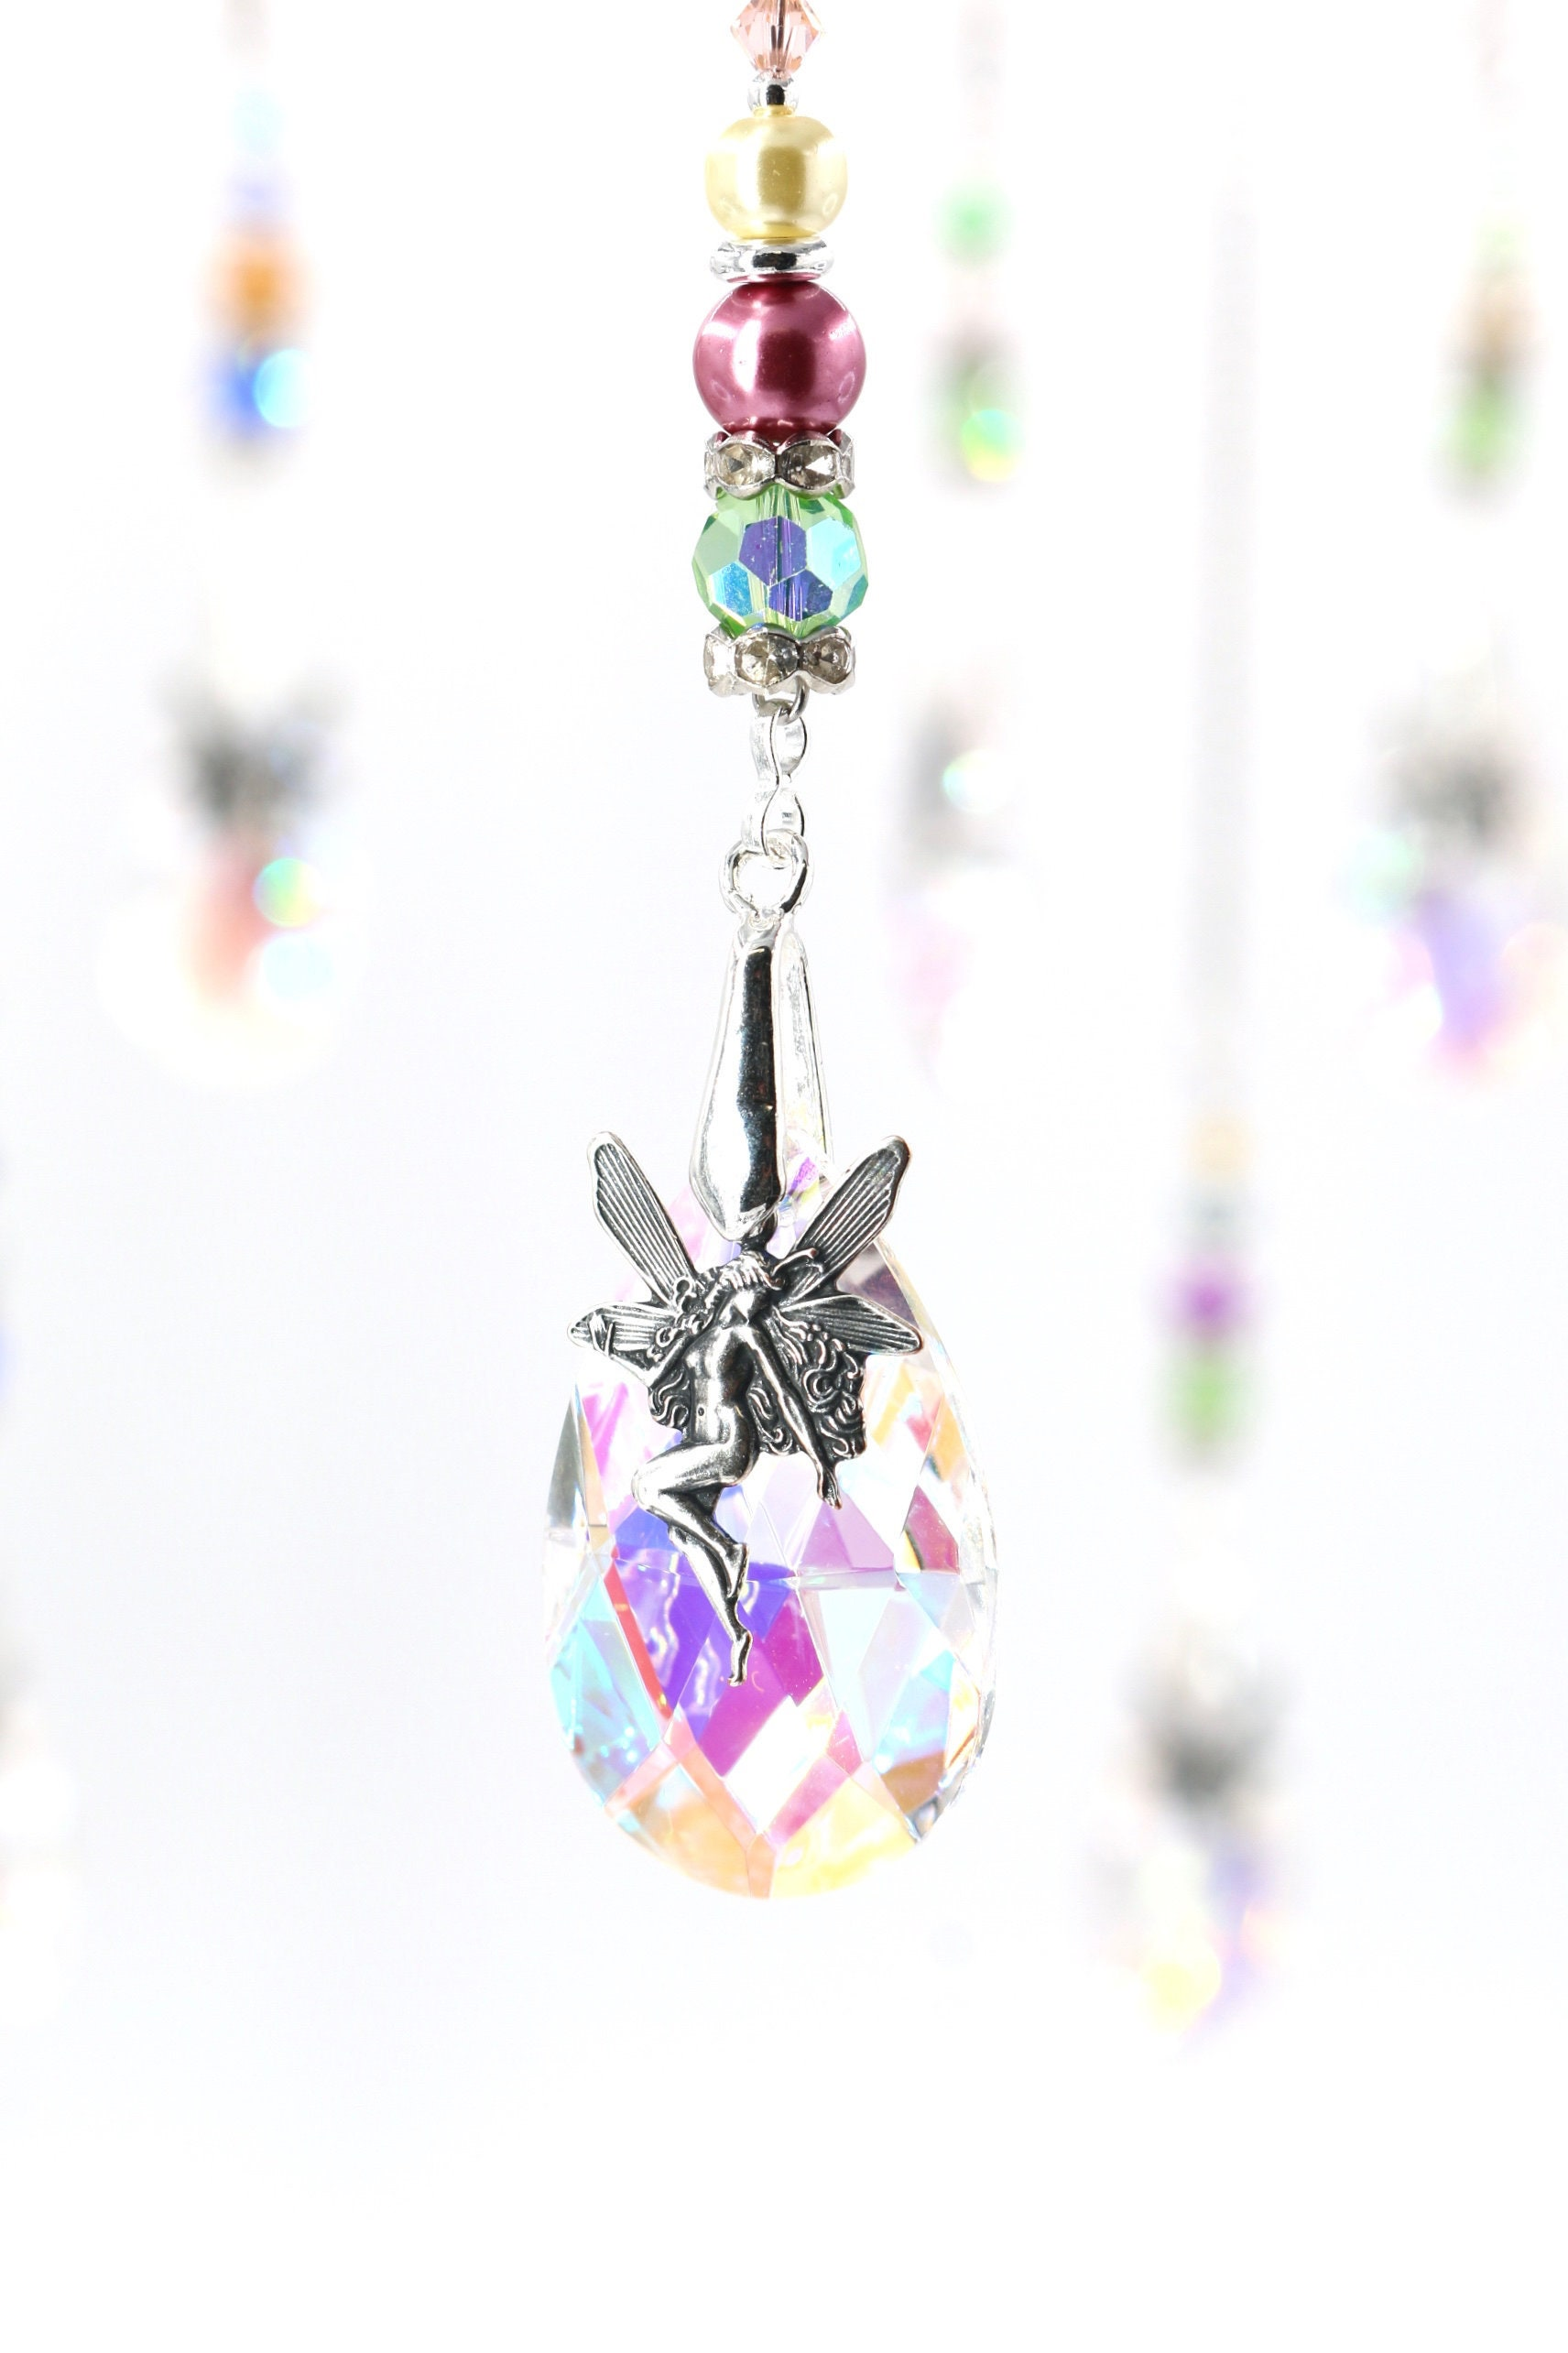 76mm Asfour Crystal Teardrop Suncatcher Crystal Prisms Great for Easy Hanging